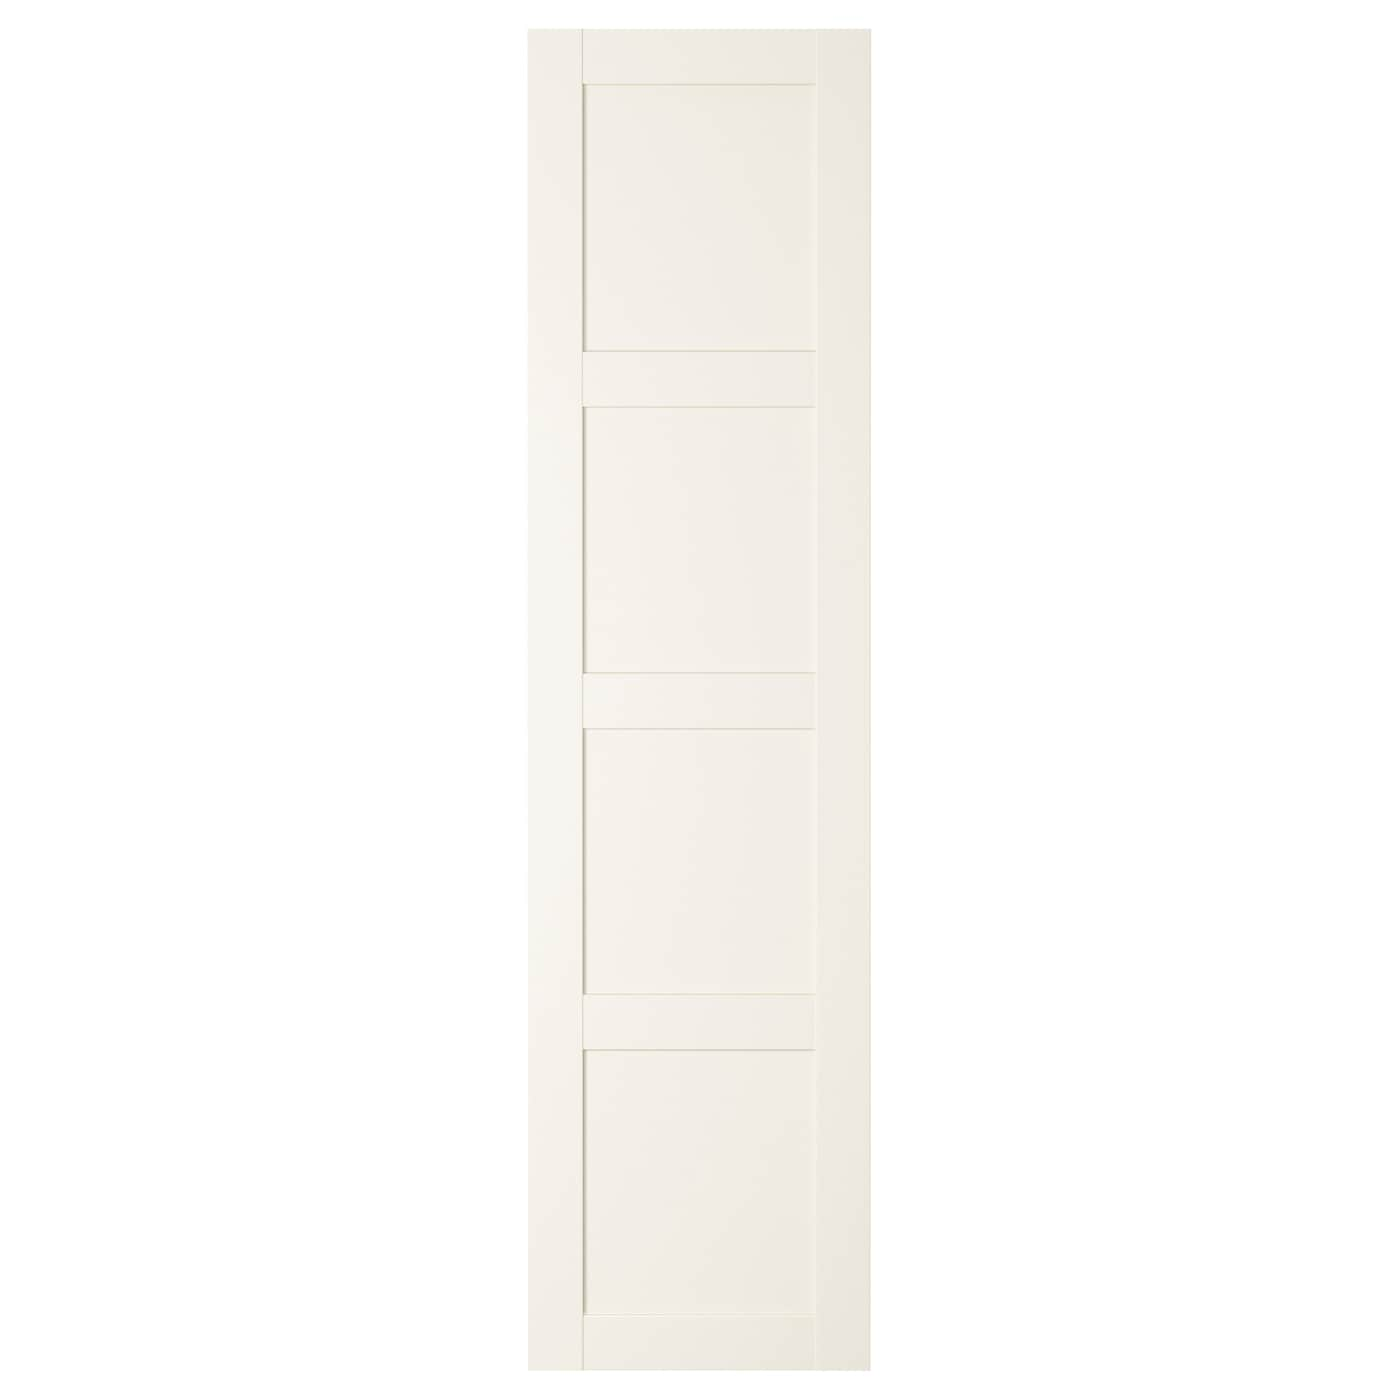 bergsbo porte avec charni res blanc 50x195 cm ikea. Black Bedroom Furniture Sets. Home Design Ideas